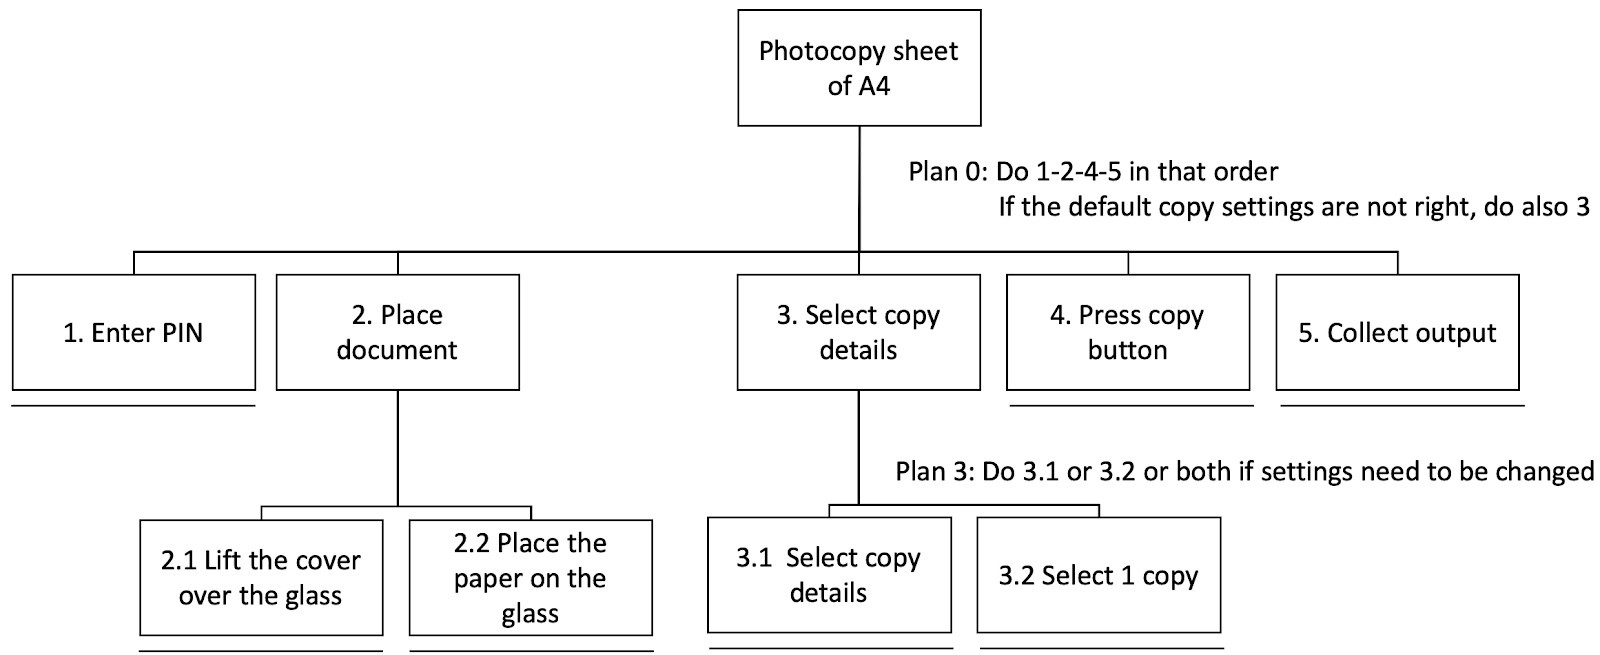 Cs C3120 1138026697 Assignment 2 Hierarchical Task Analysis